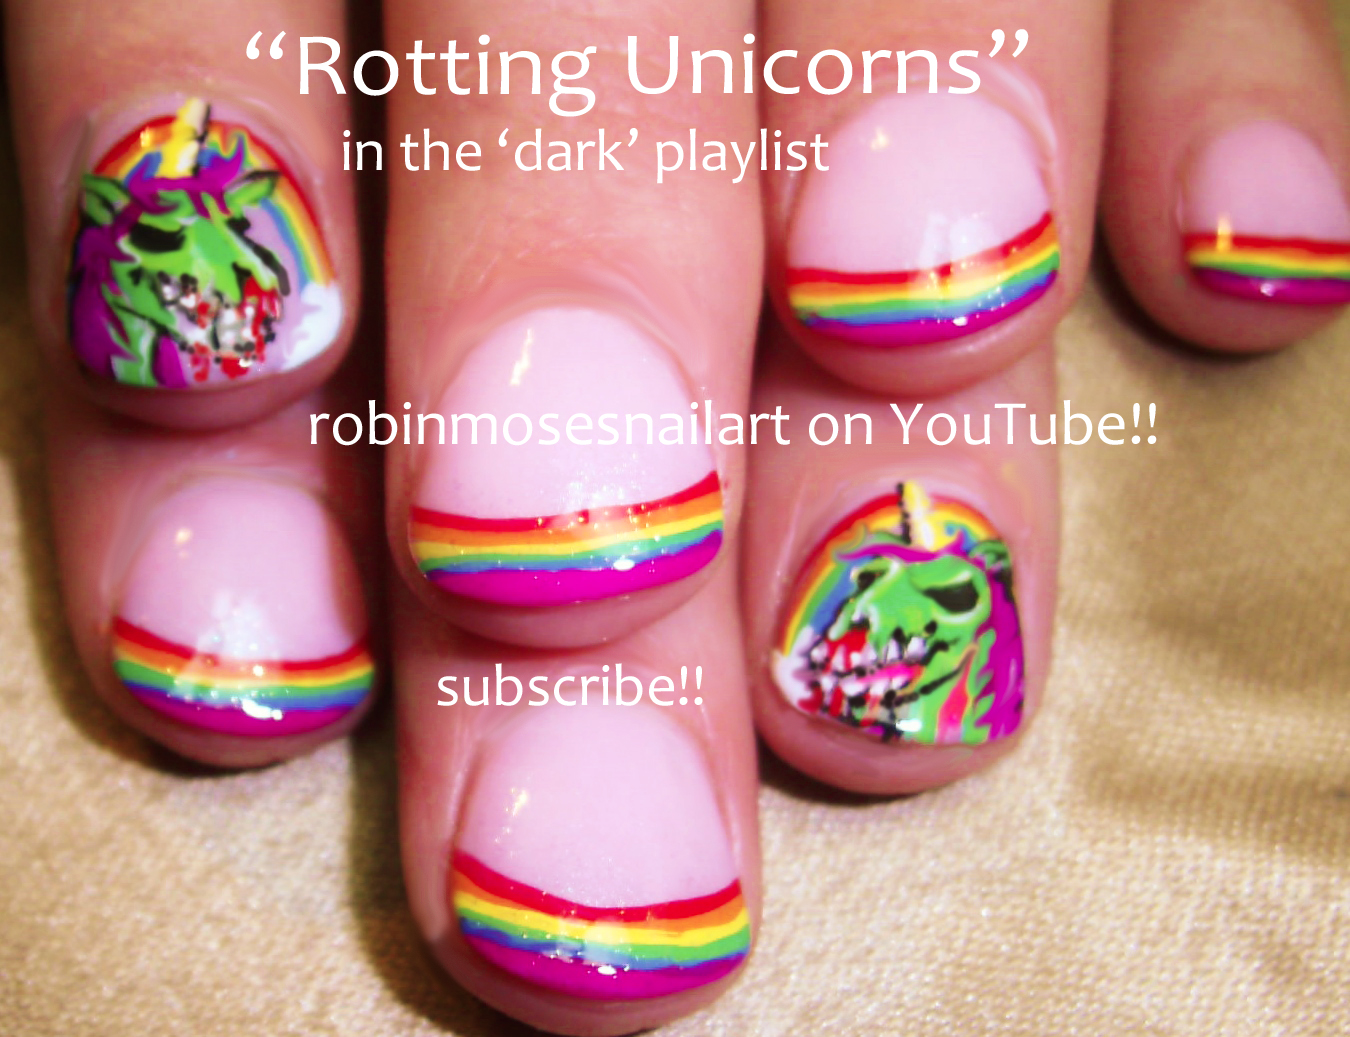 Zombie Unicorn Nails Rainbow Tip Nail Art Tutorial Evil Rotting Epic French